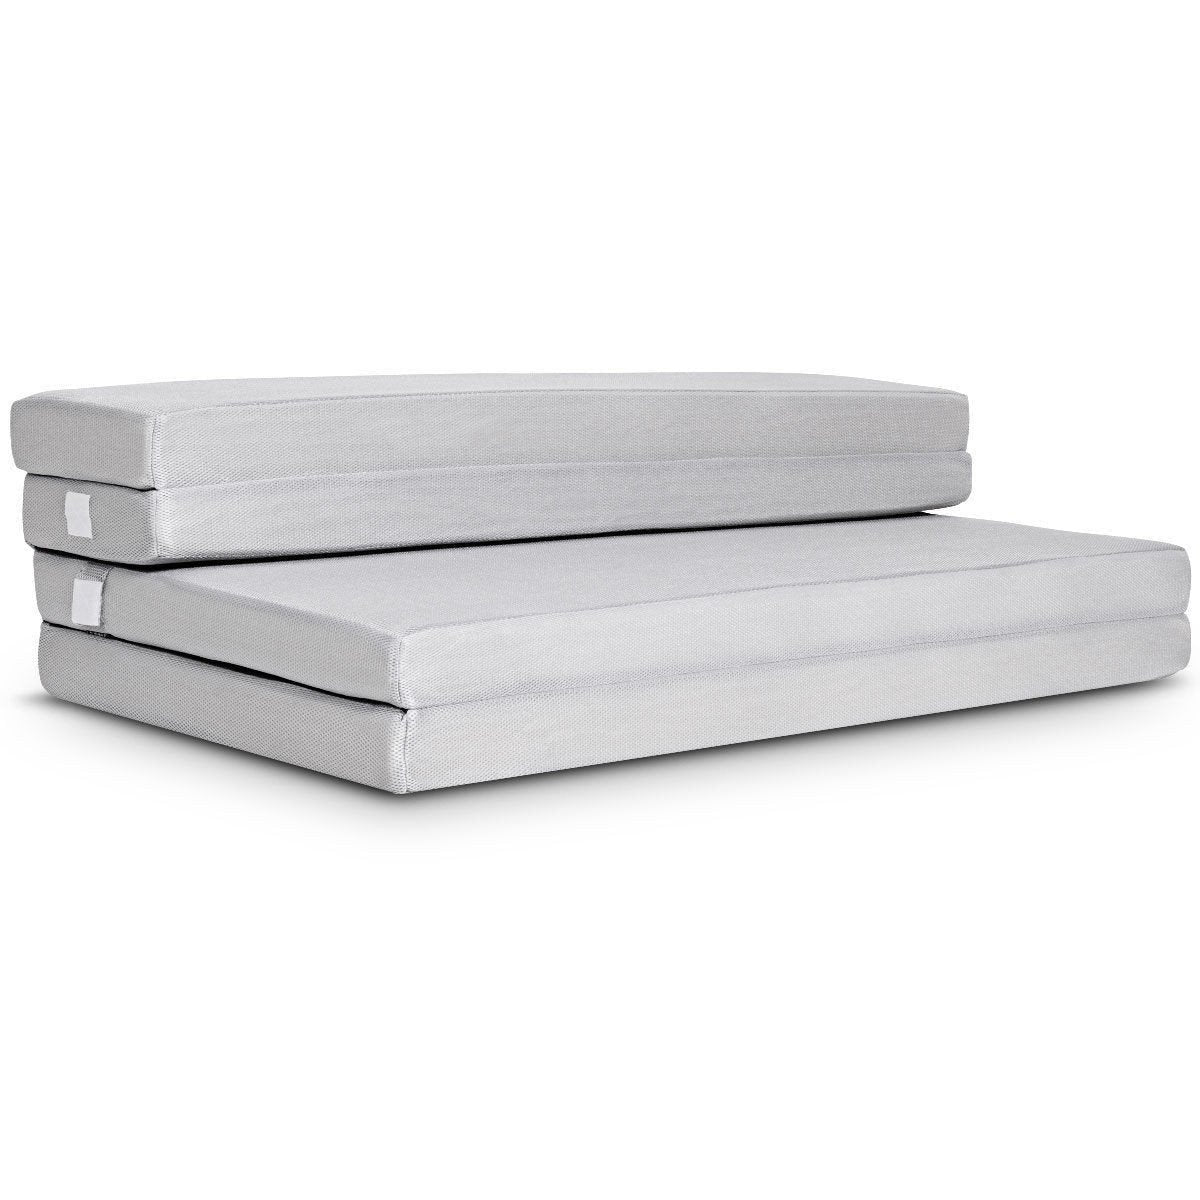 Queen size 4-inch Thick Folding Guest Bed Mattress